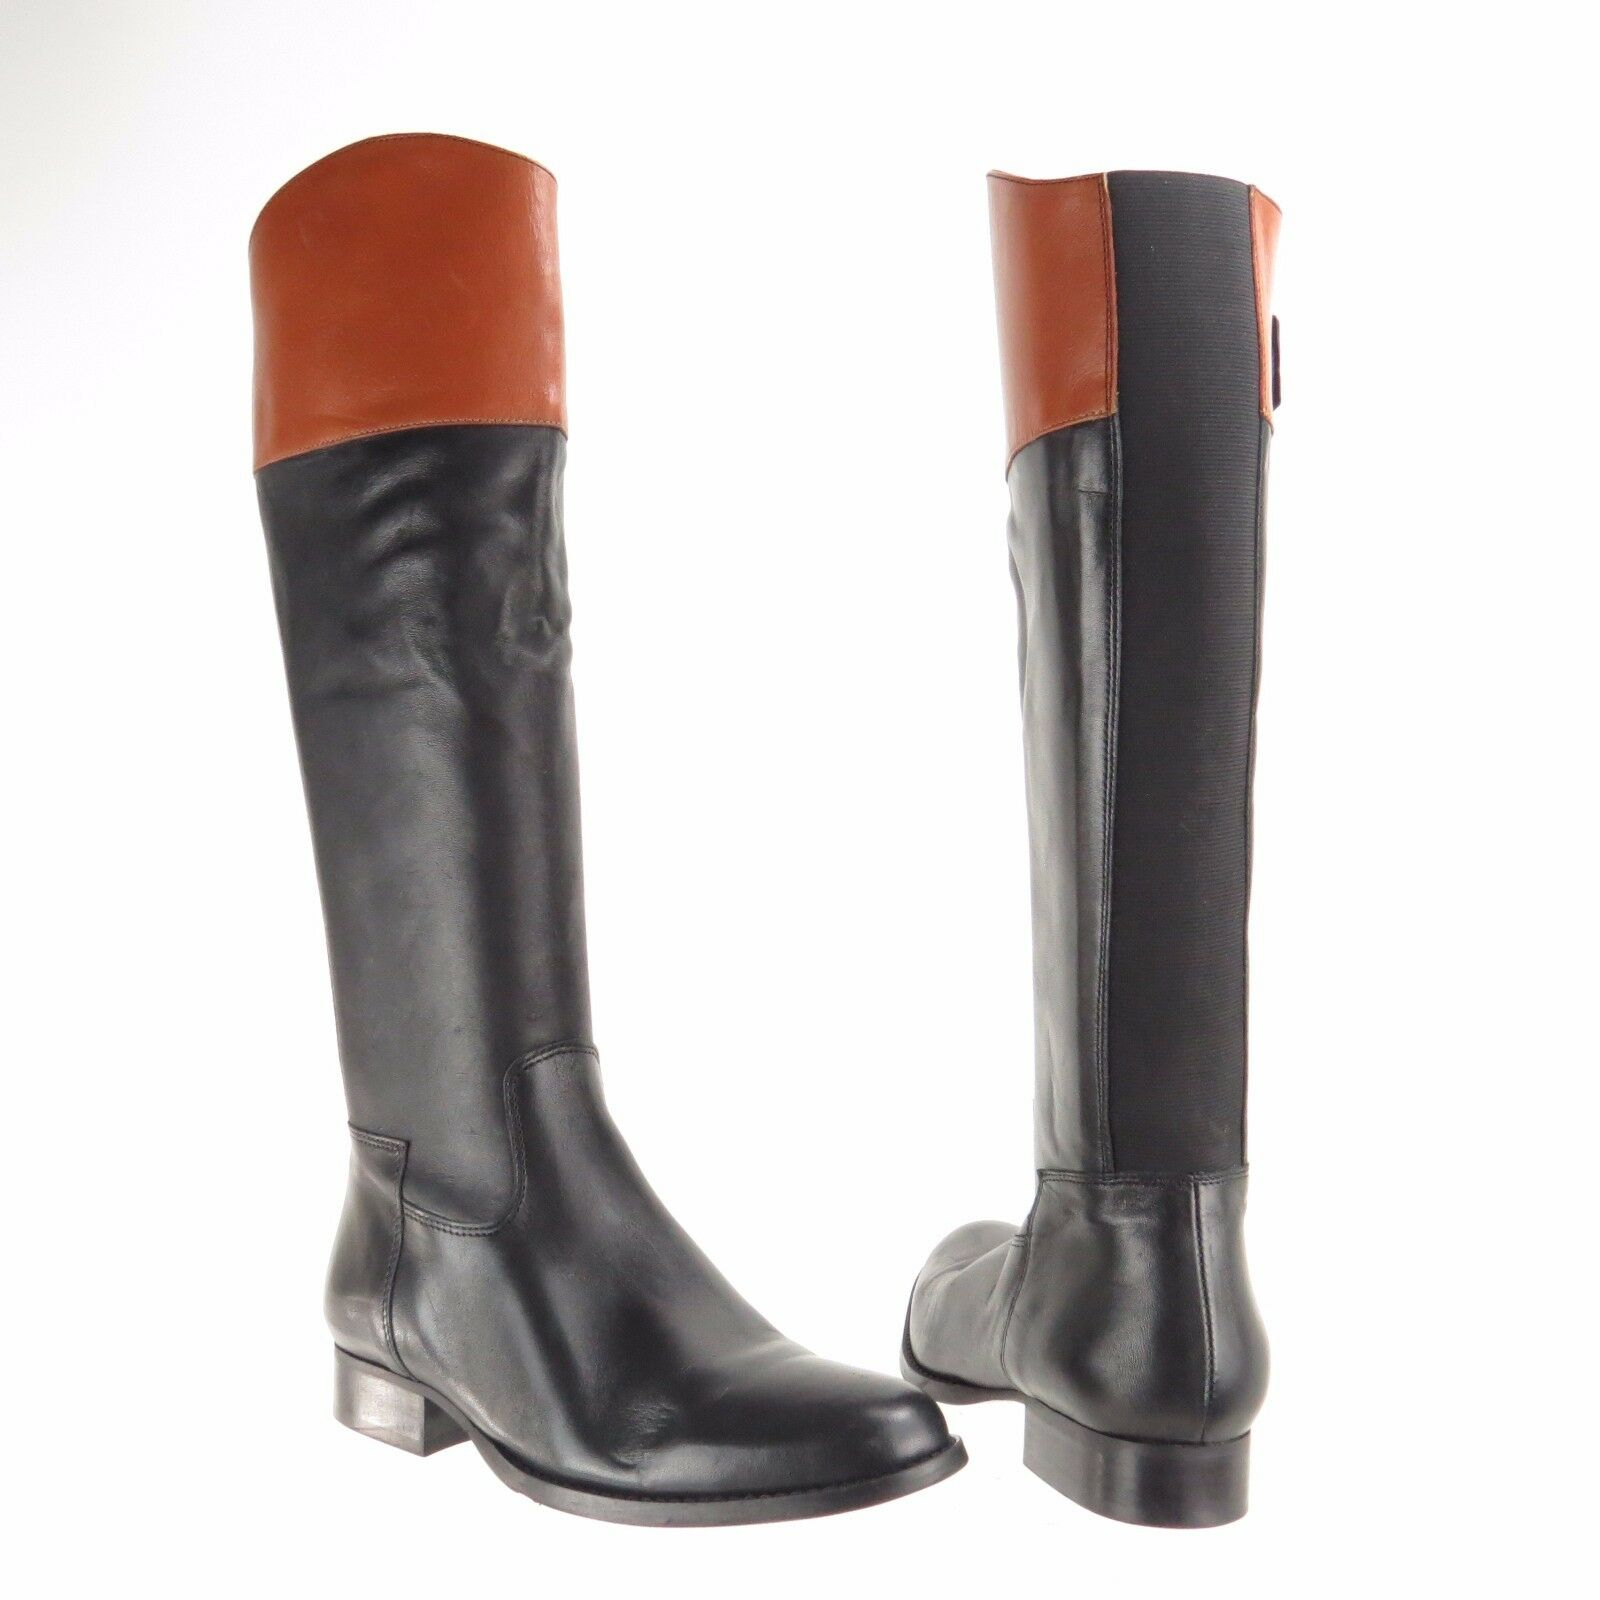 Women's L.K. Bennett Luella Shoes Black Tan Leather Knee High Boots Size 36 NEW!